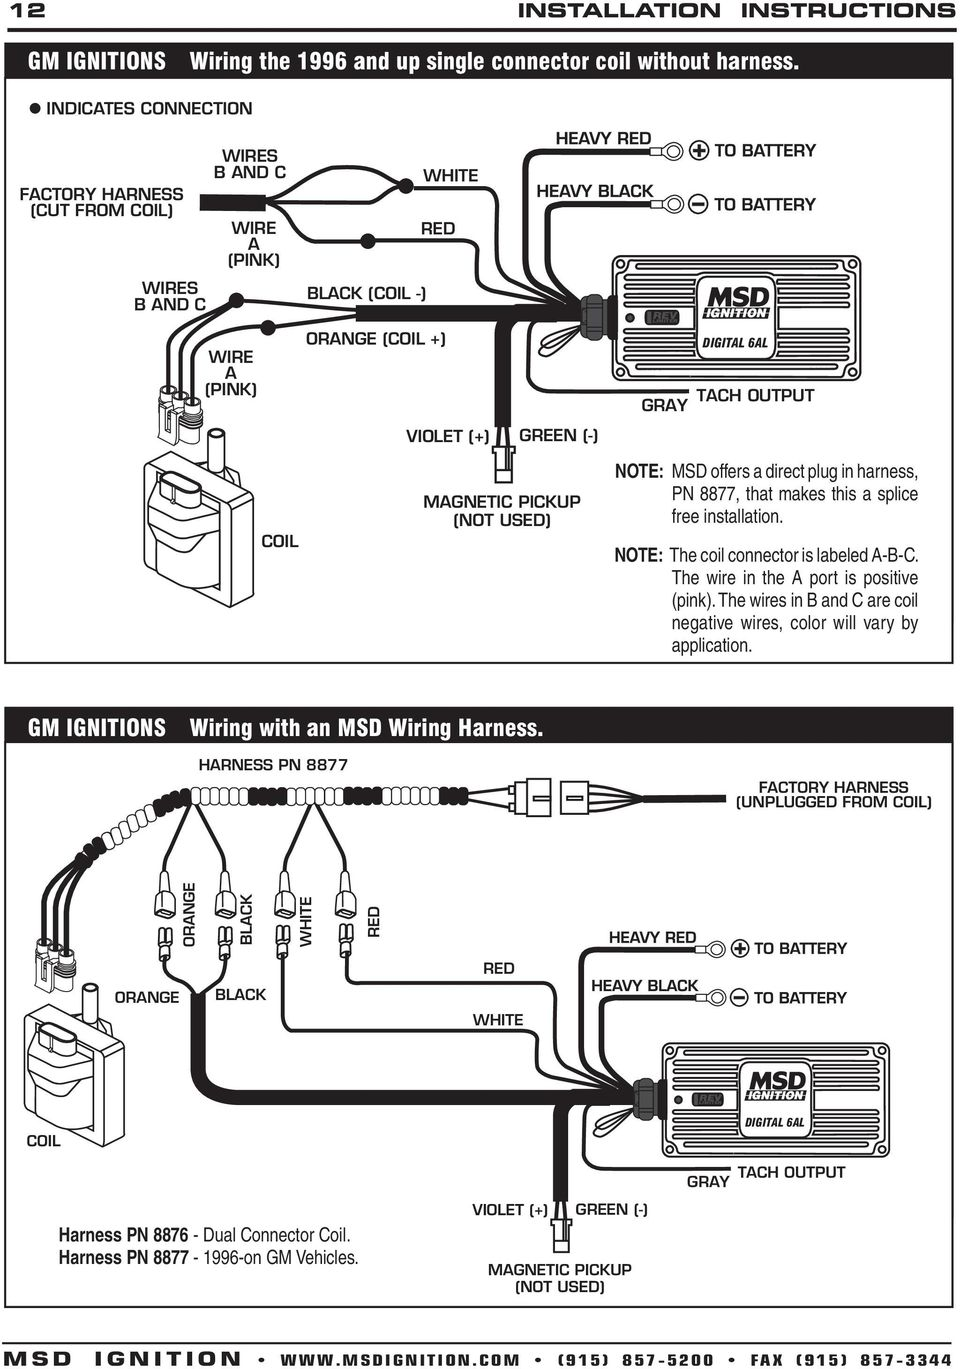 Wiring diagram for msd starter saver